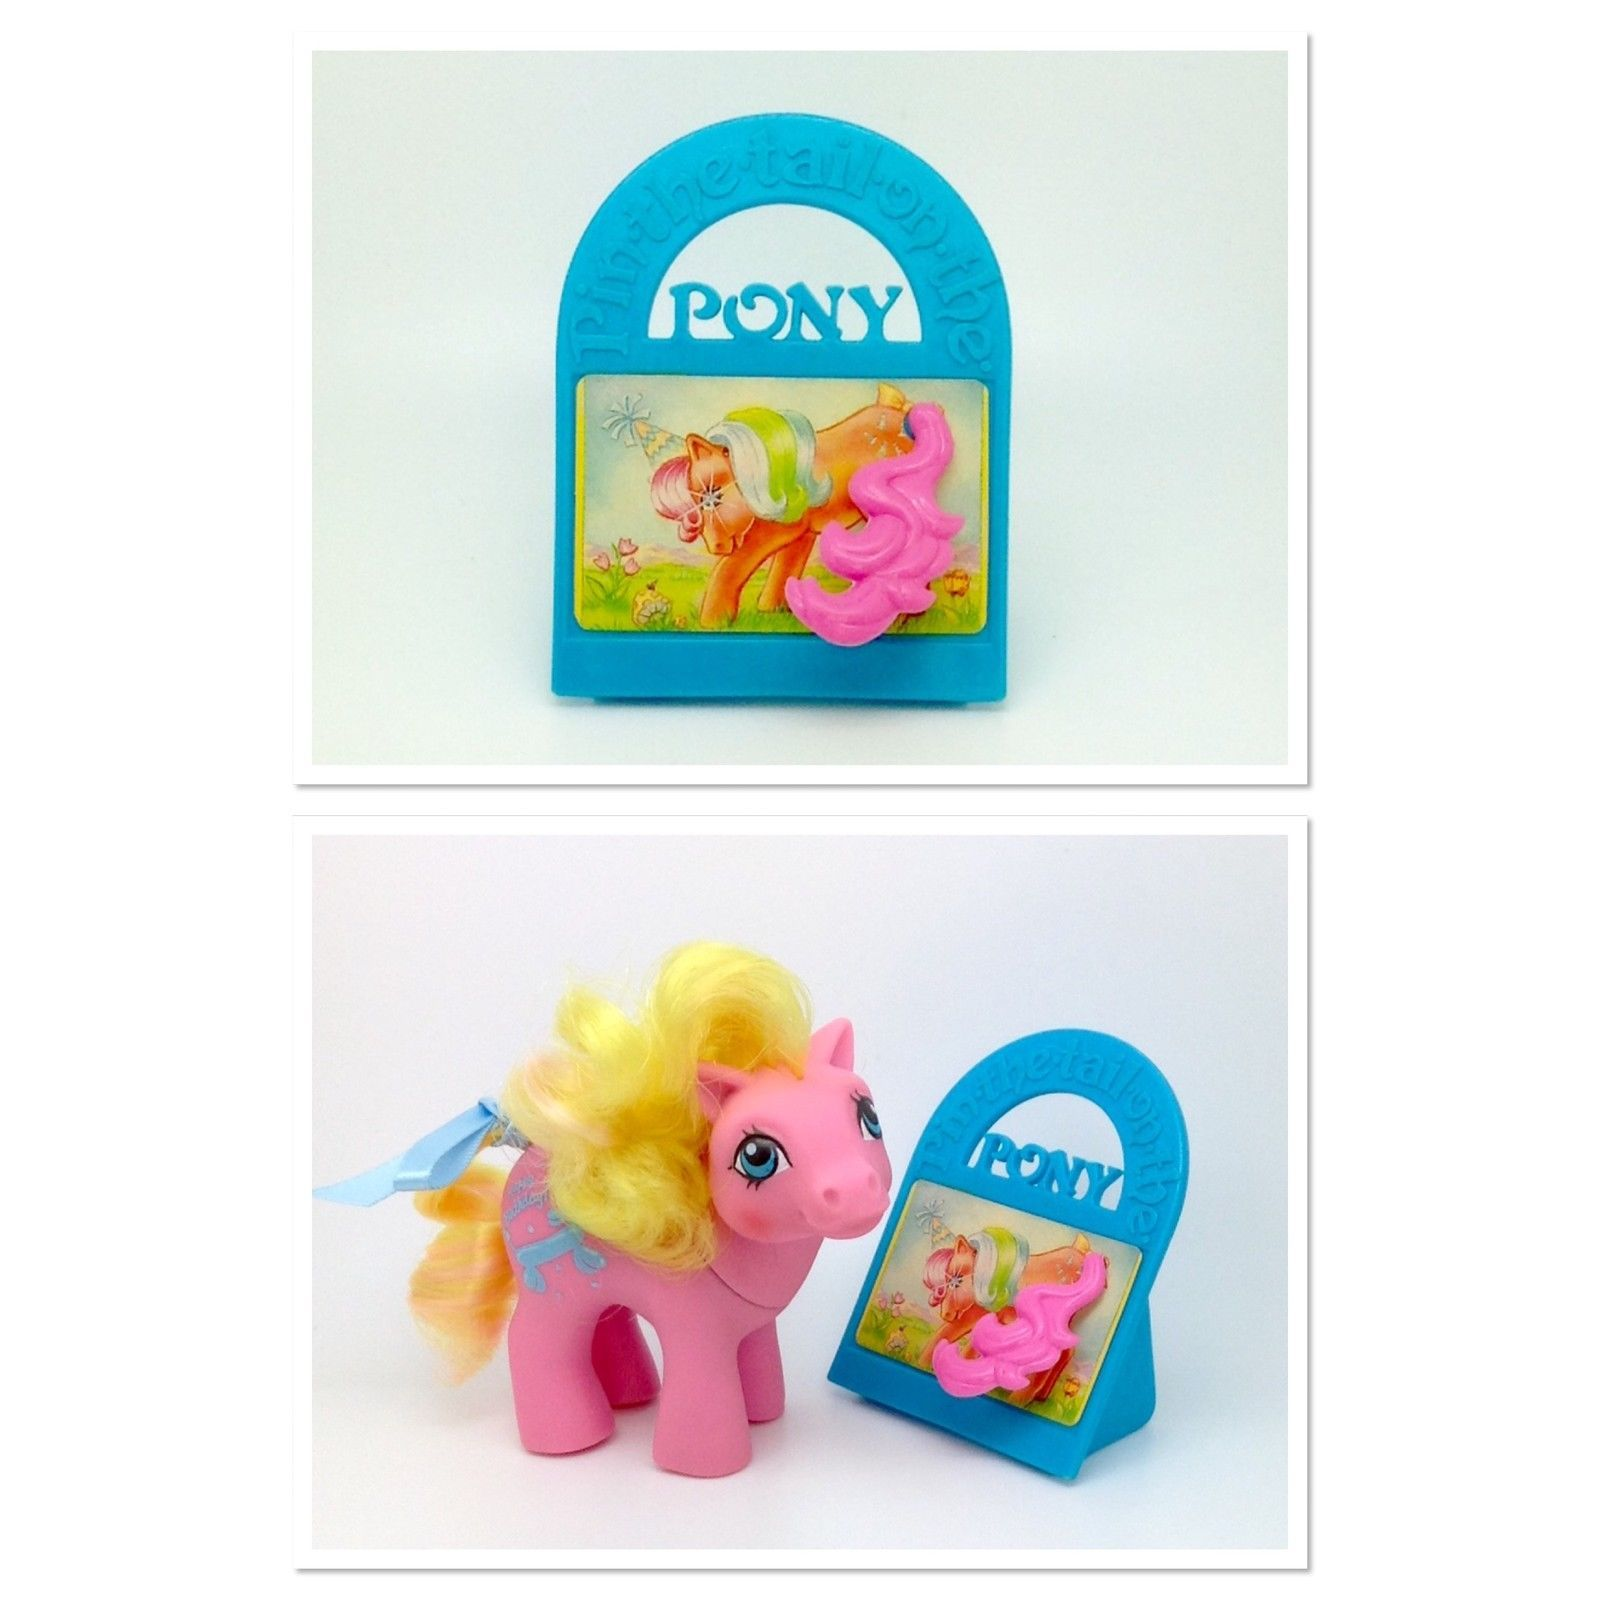 ✩ My Little Pony ✩ G1 MO Baby Gametime's 'Pin The Tail On The Pony' Game ONLY! | eBay